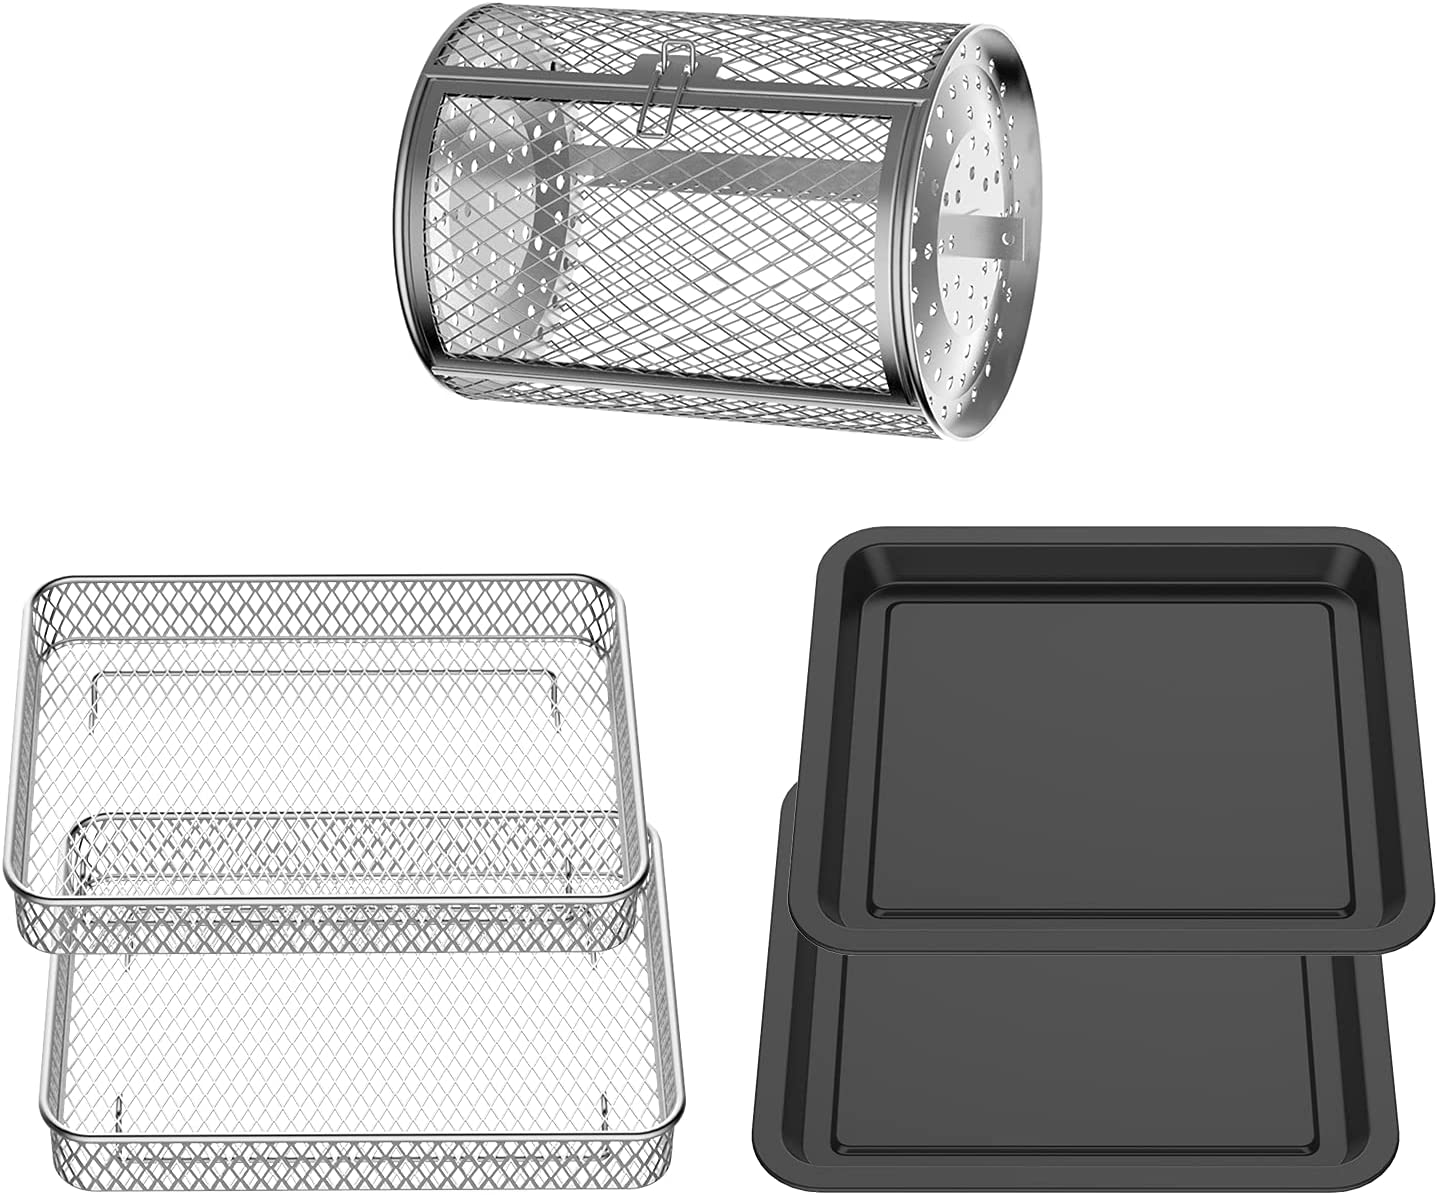 USBLUEWAVE 5-Pieces Air Fryer Oven Accessories Kit for Multi Brands, Rotisseries Drum|Air Fryer Basket| Baking Tray, Easy Clean, Black&Silver